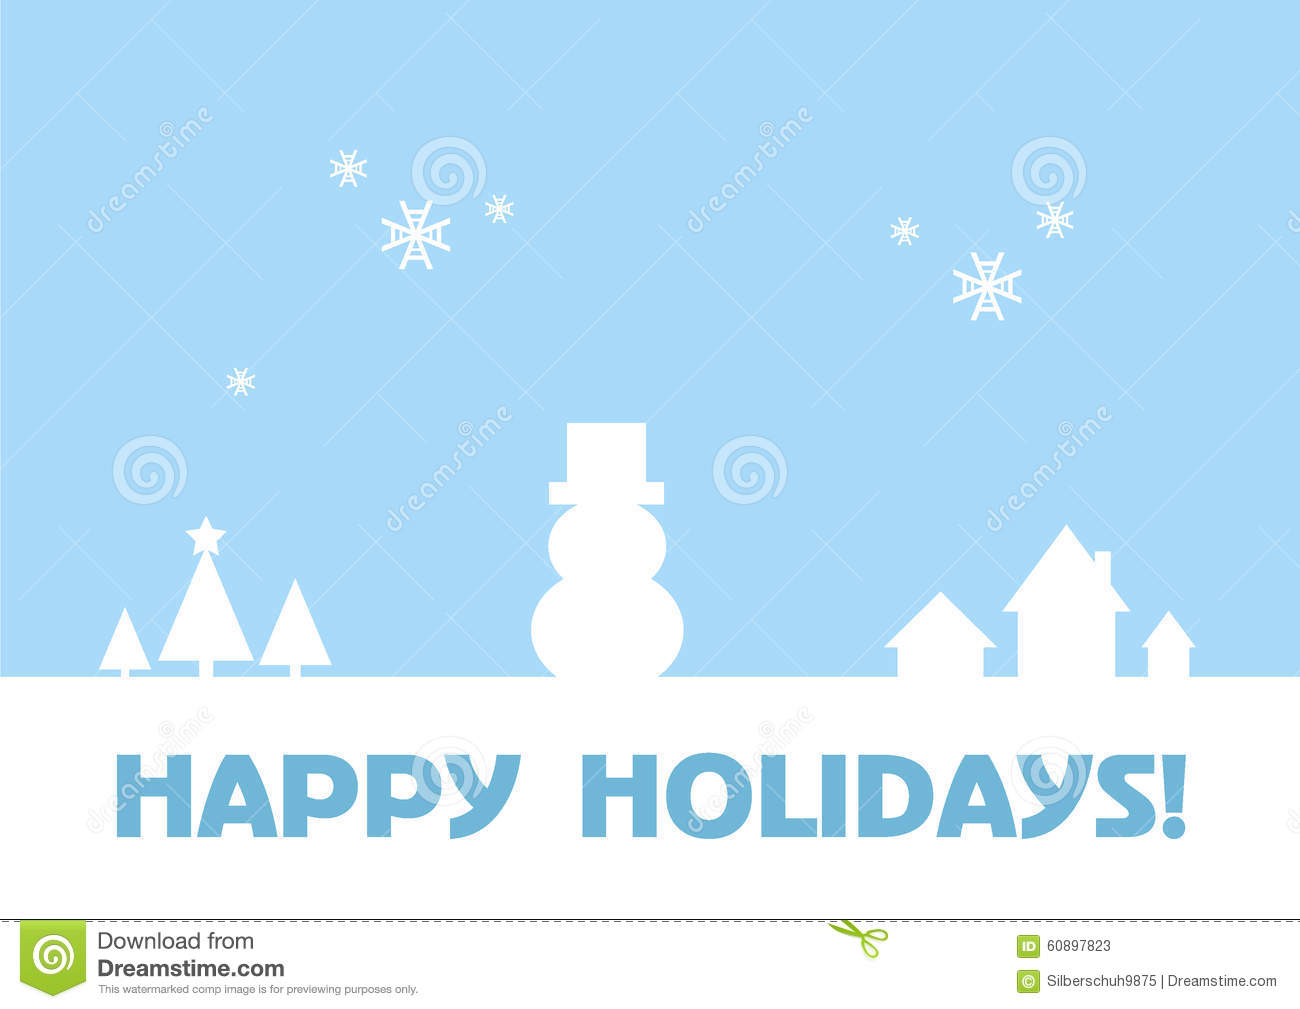 Happy holidays greeting card winter background stock vector happy holidays greeting card winter background kristyandbryce Image collections